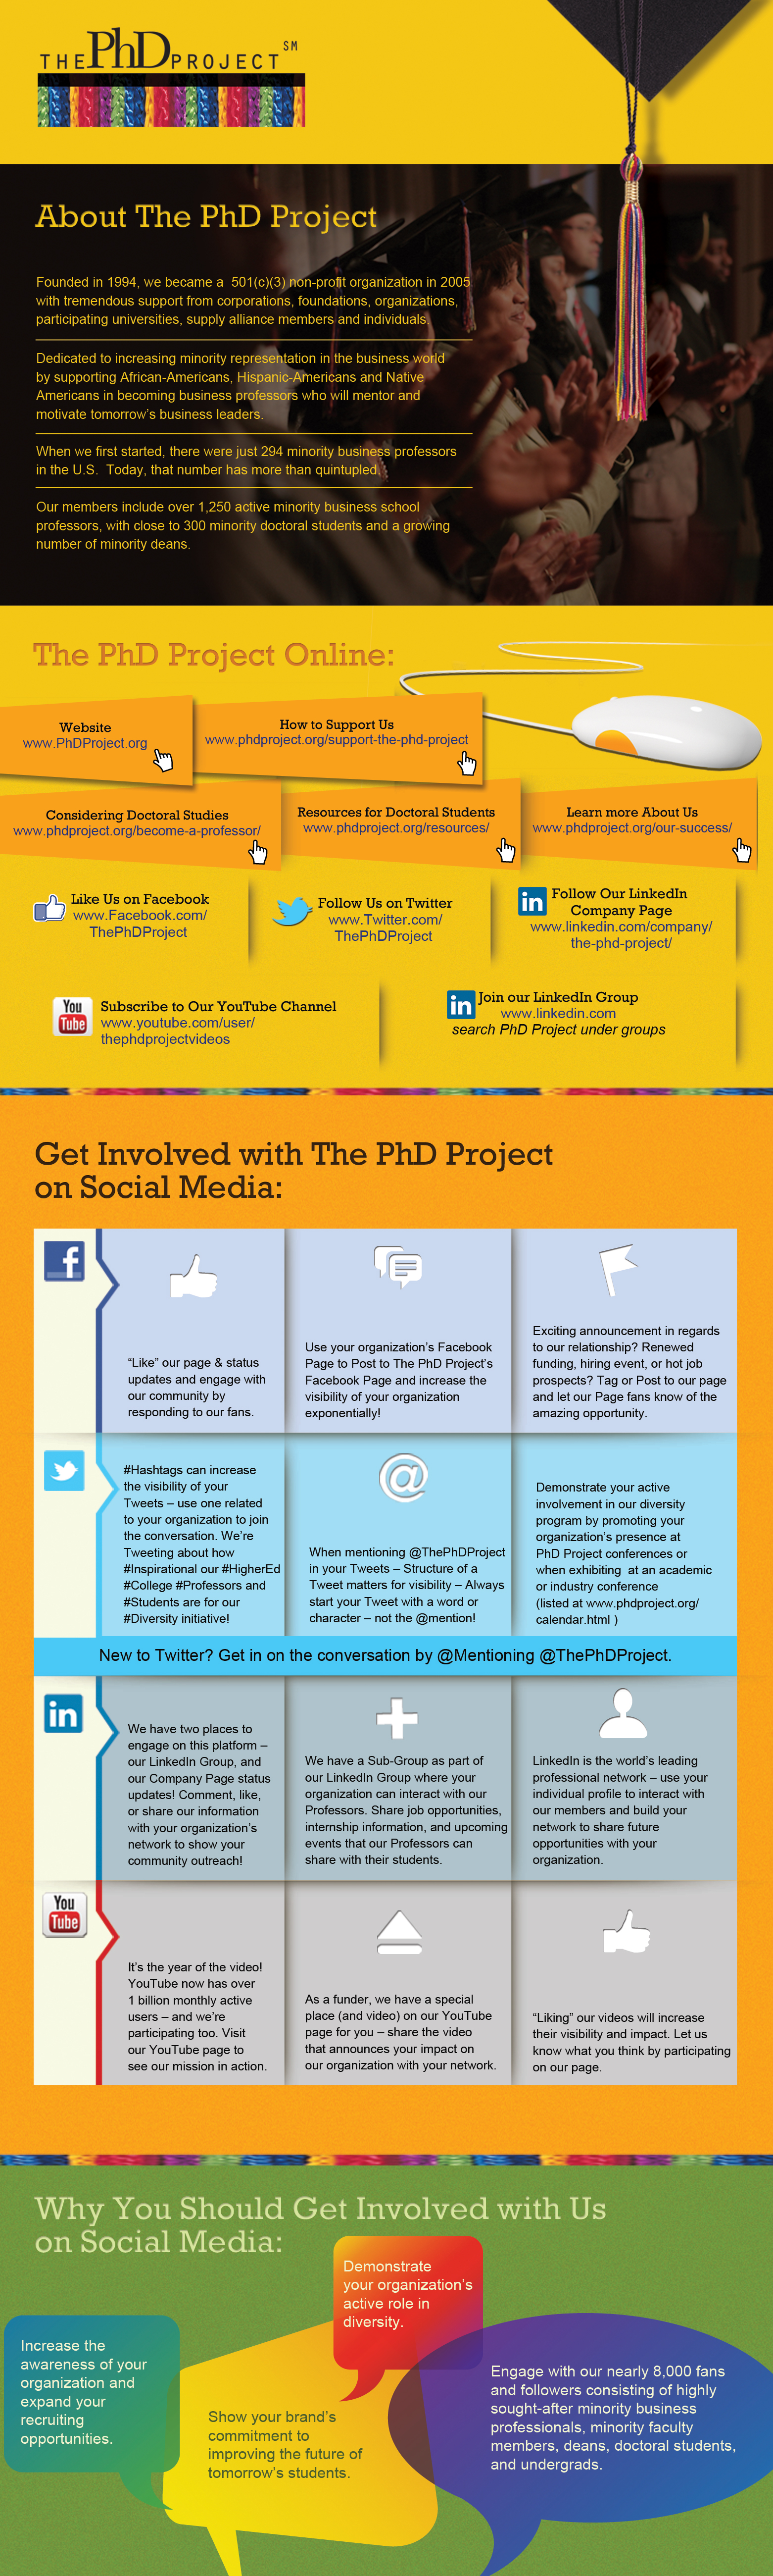 The PhD Project: Education Funding